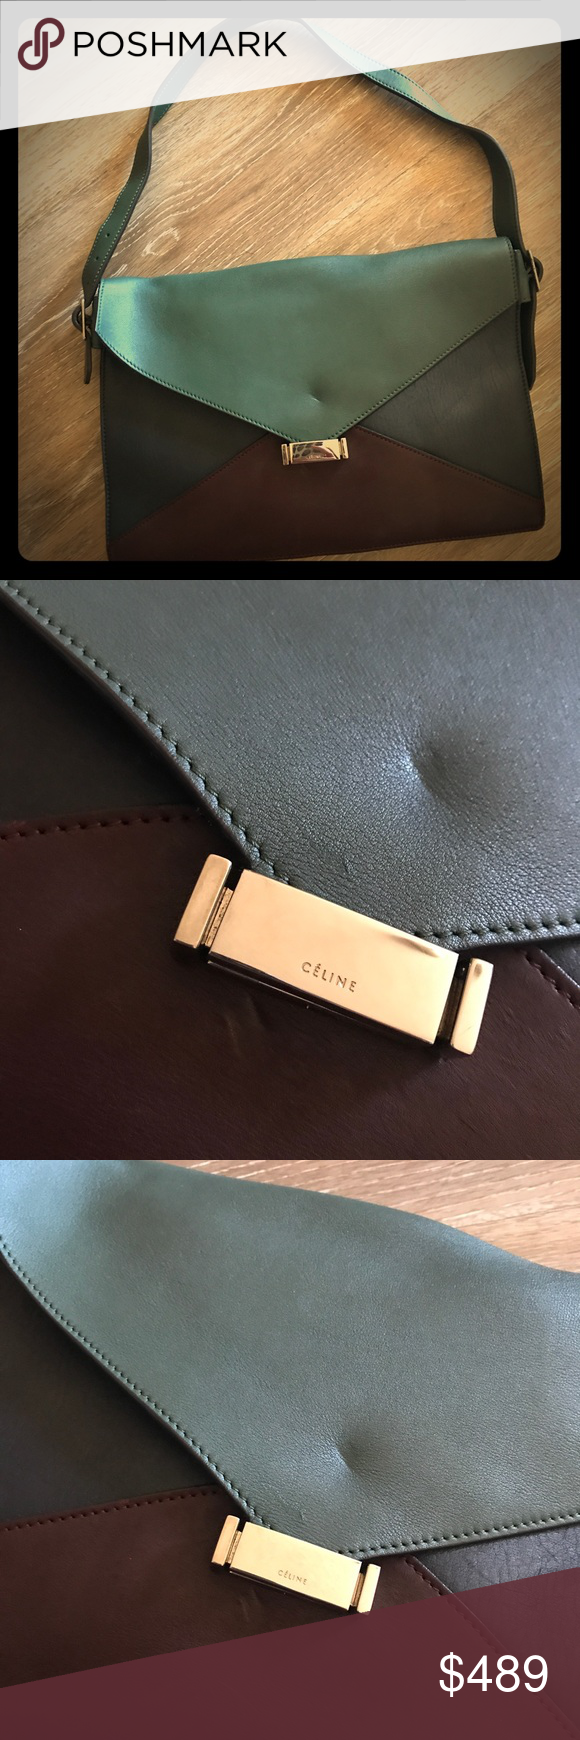 c80290d2320d Celine envelope clutch calfskin leather purse bag New w o tags from  Barney s New York